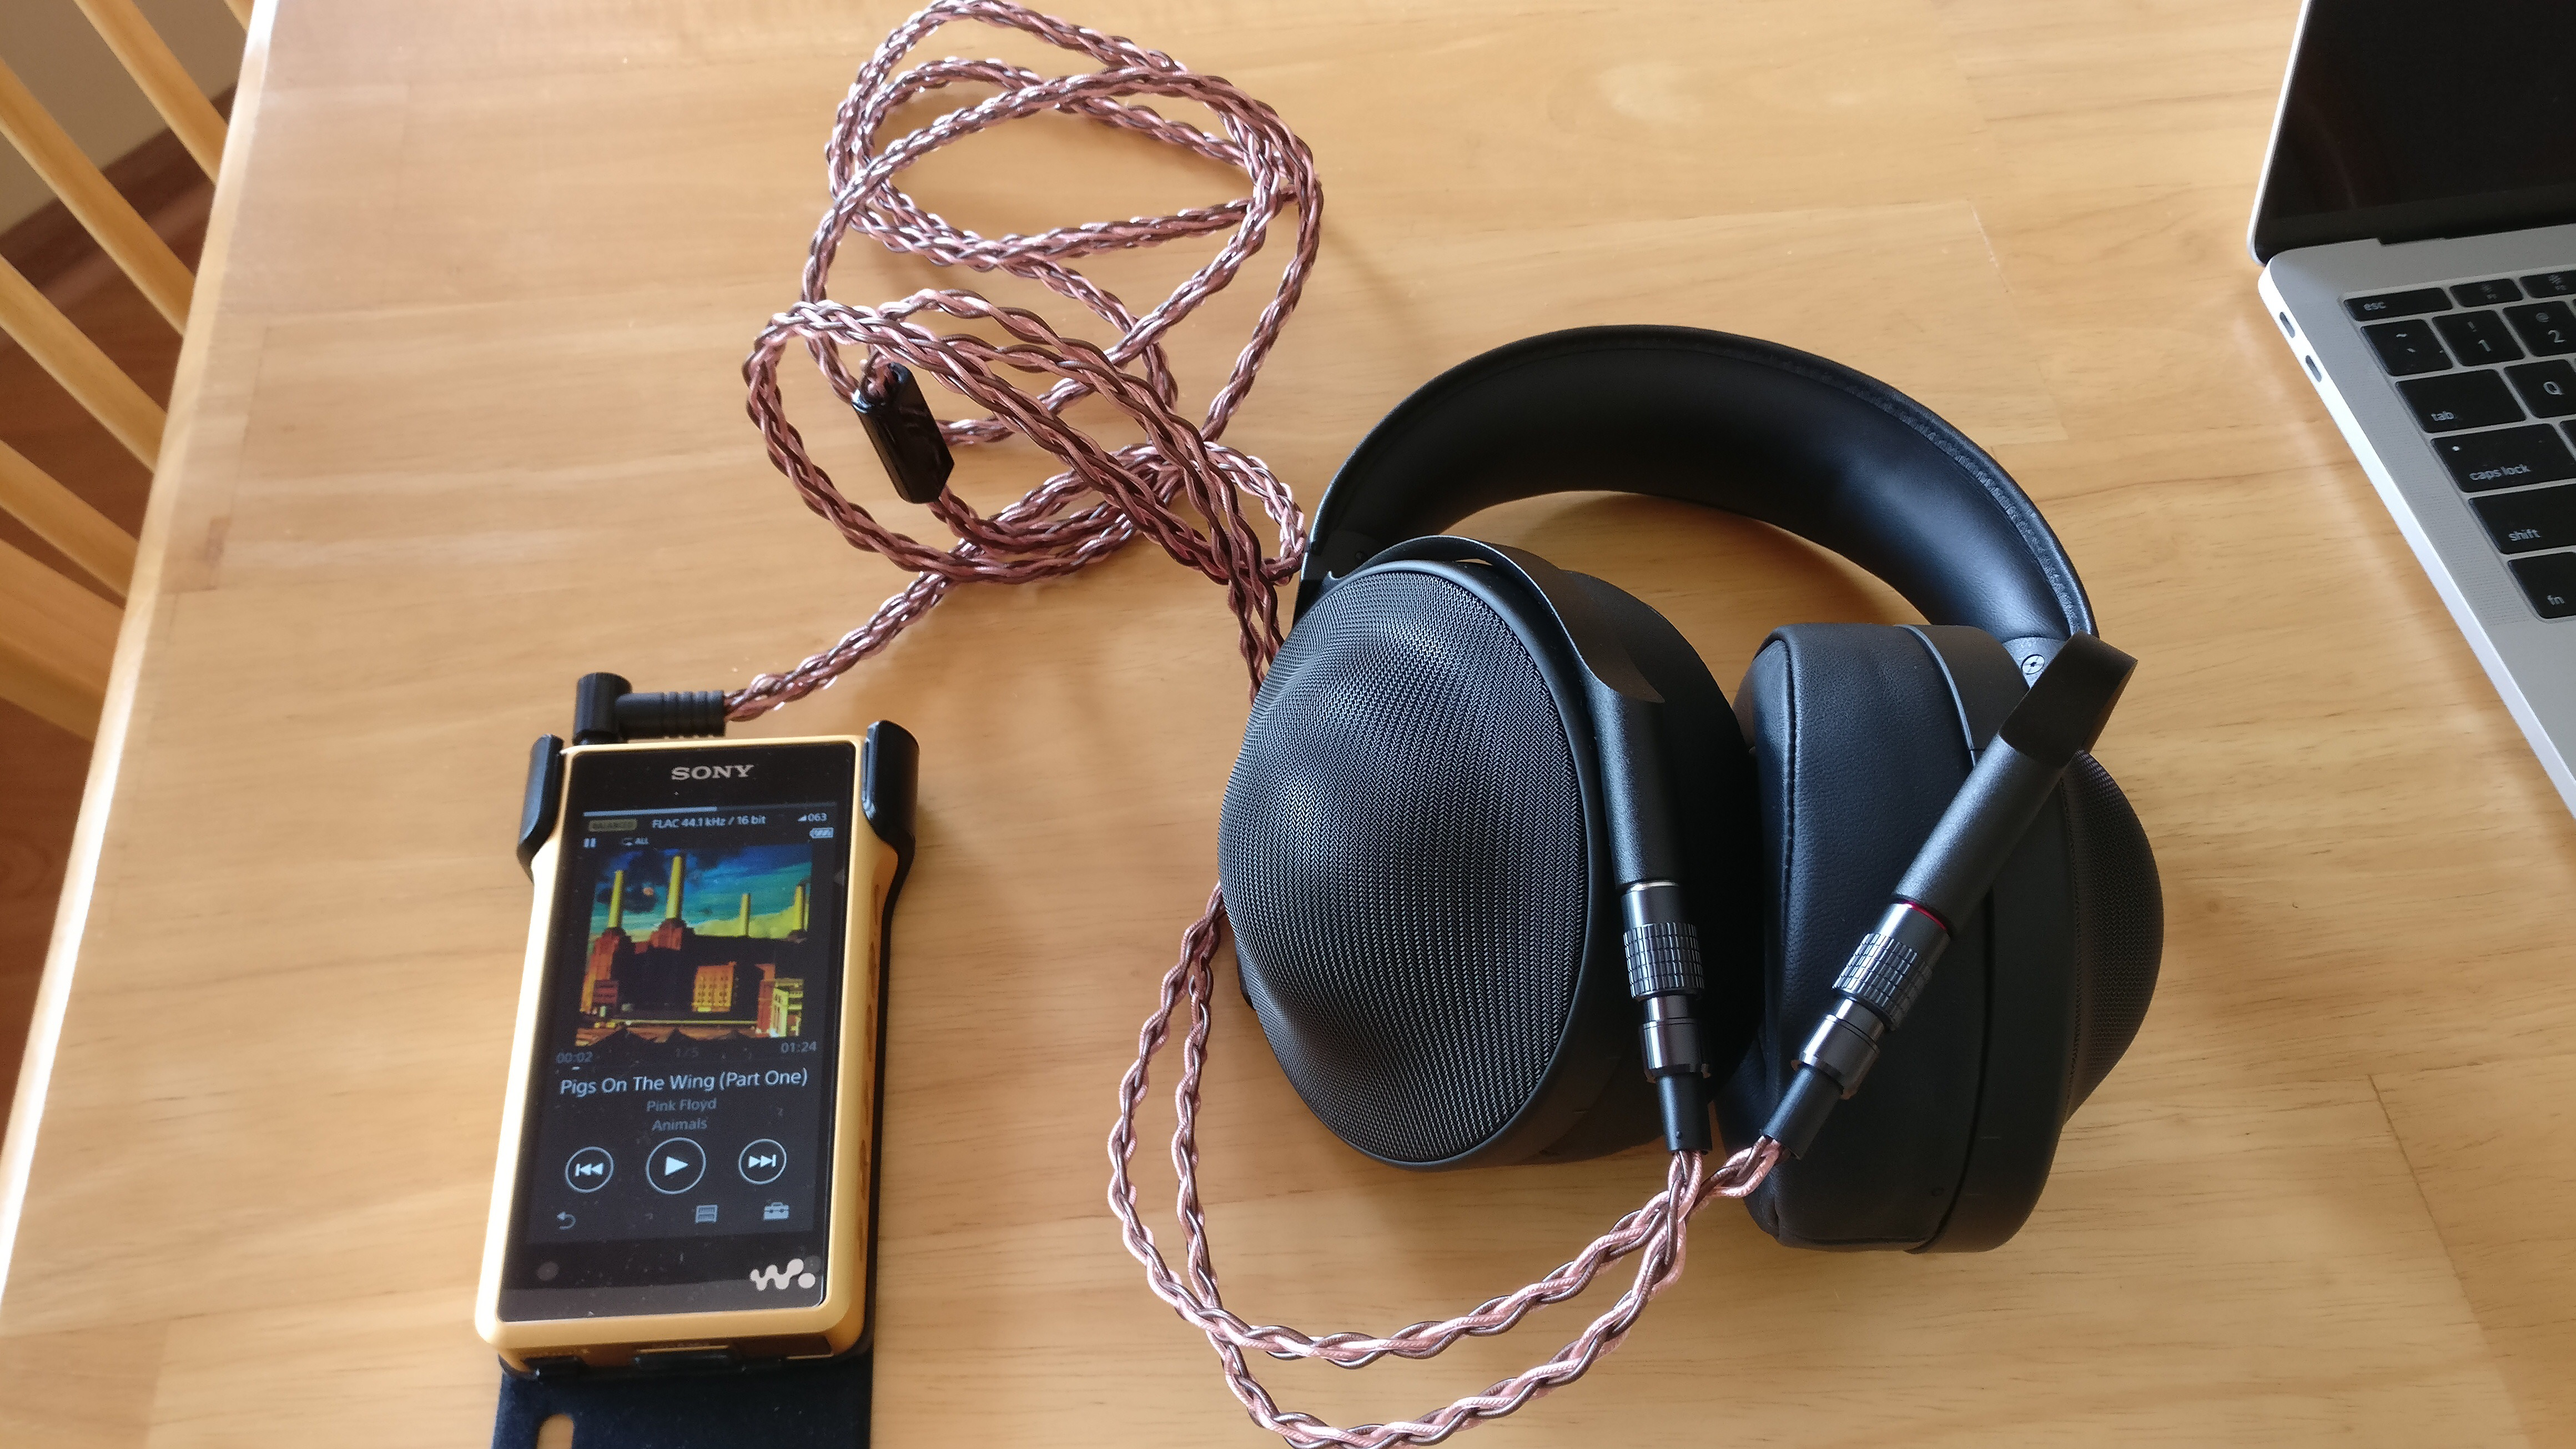 Sony Walkman With High Resolution Audio Nw A36 Black Wm1z Wm1a Page 824 Headphone Reviews And Discussion Img 1723